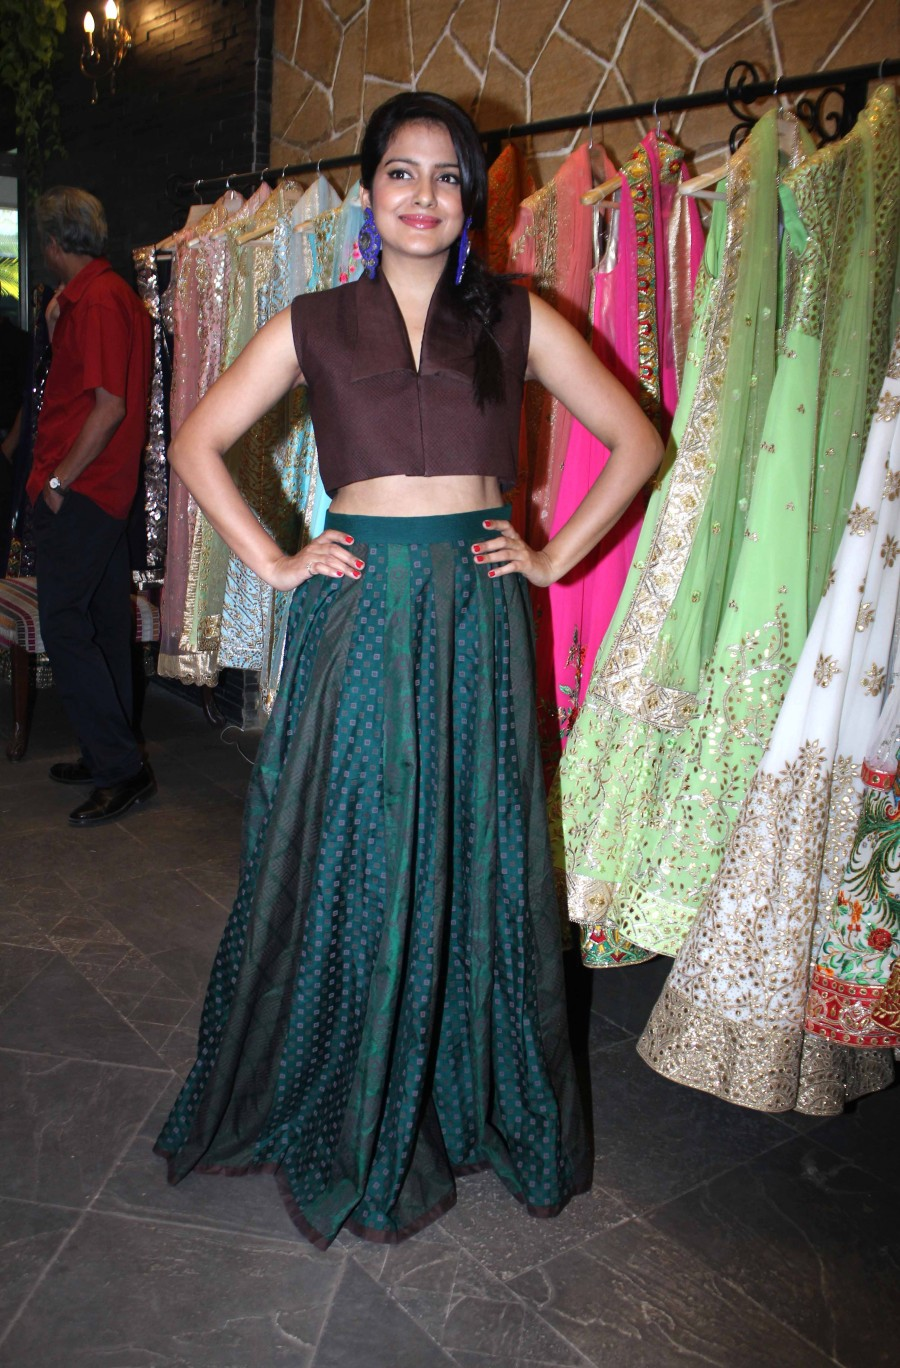 Vishakha Singh,Shruti Sancheti,Pooja Chopra,Spring Summer Collection 2015,Launch of Spring Summer Collection 2015,mumbai event,Spring Summer Collection photos